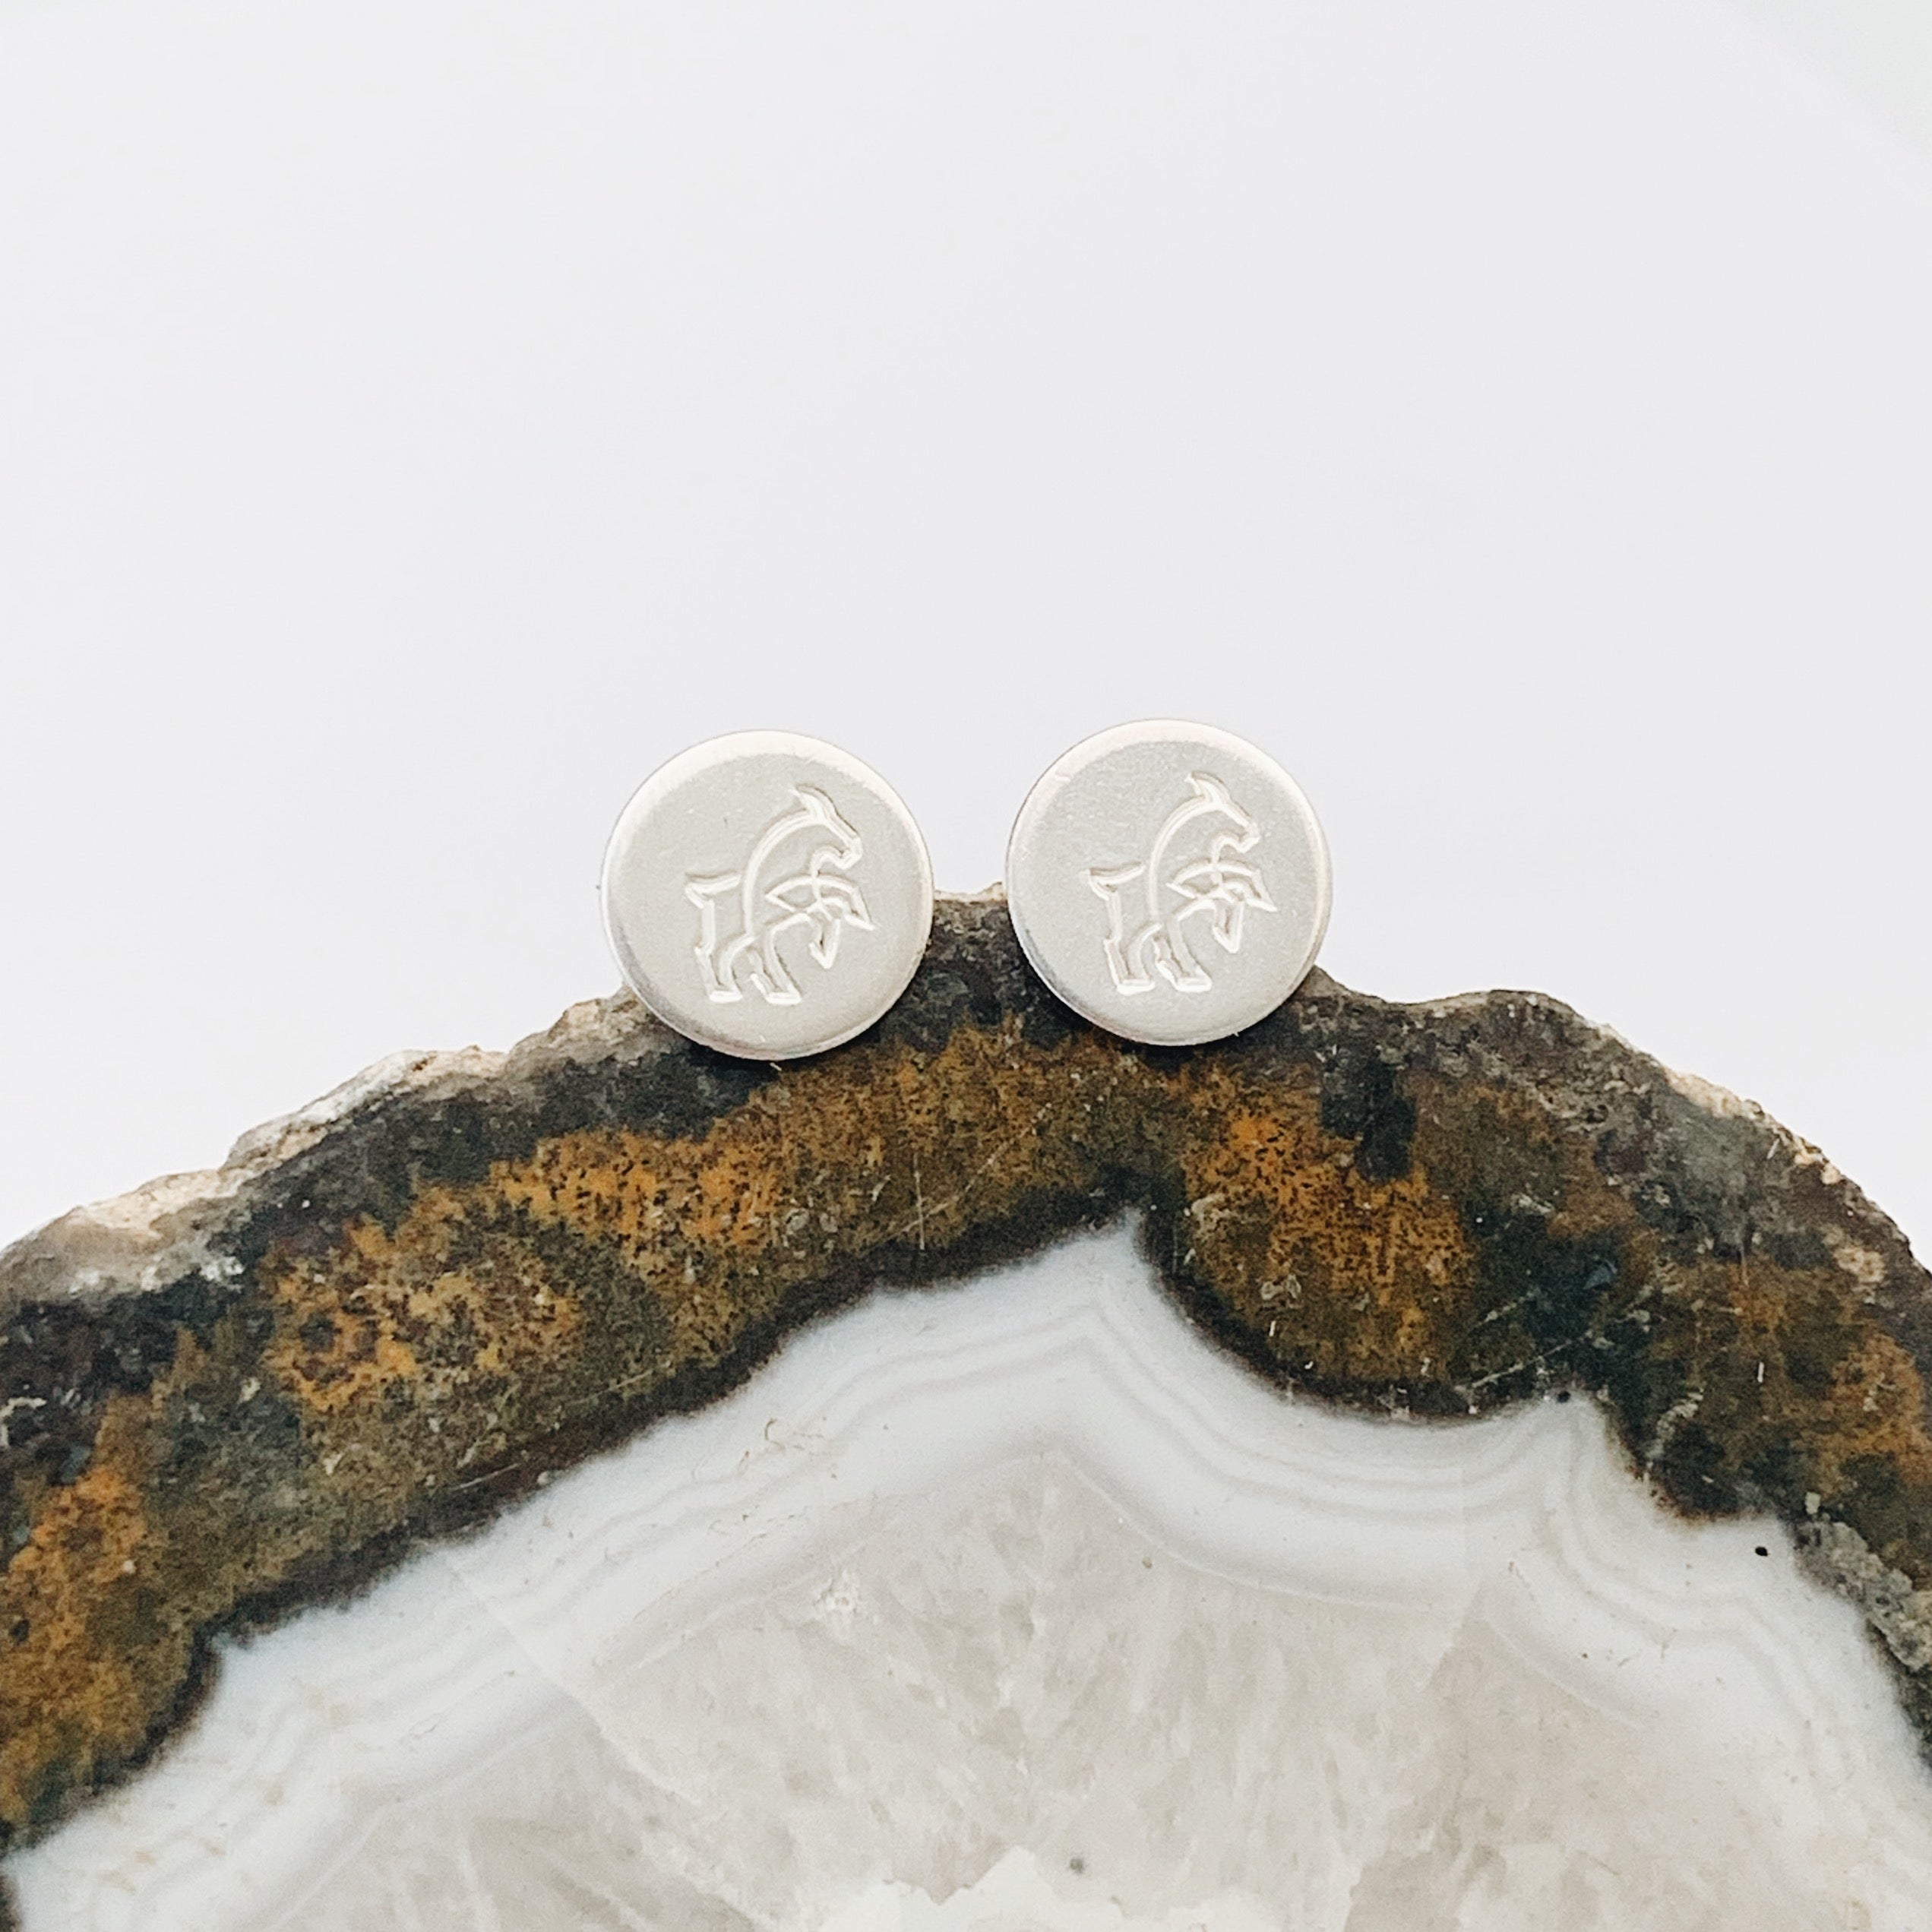 GOAT on Sterling Silver Round Studs